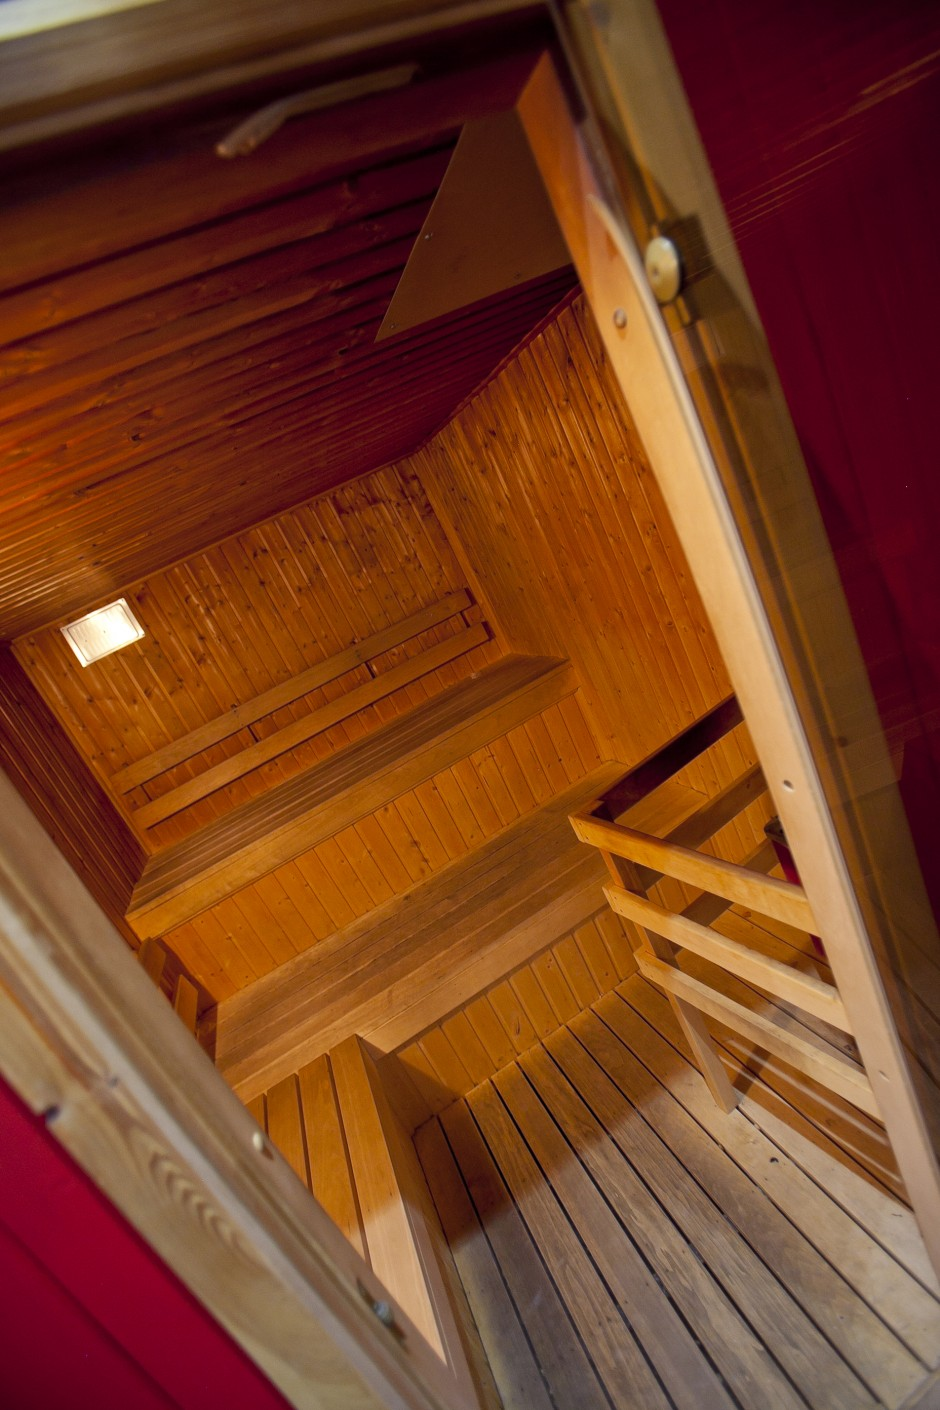 Sauna Fitness And Massage Room Spa In Cluj: Quest Sauna Steam Room